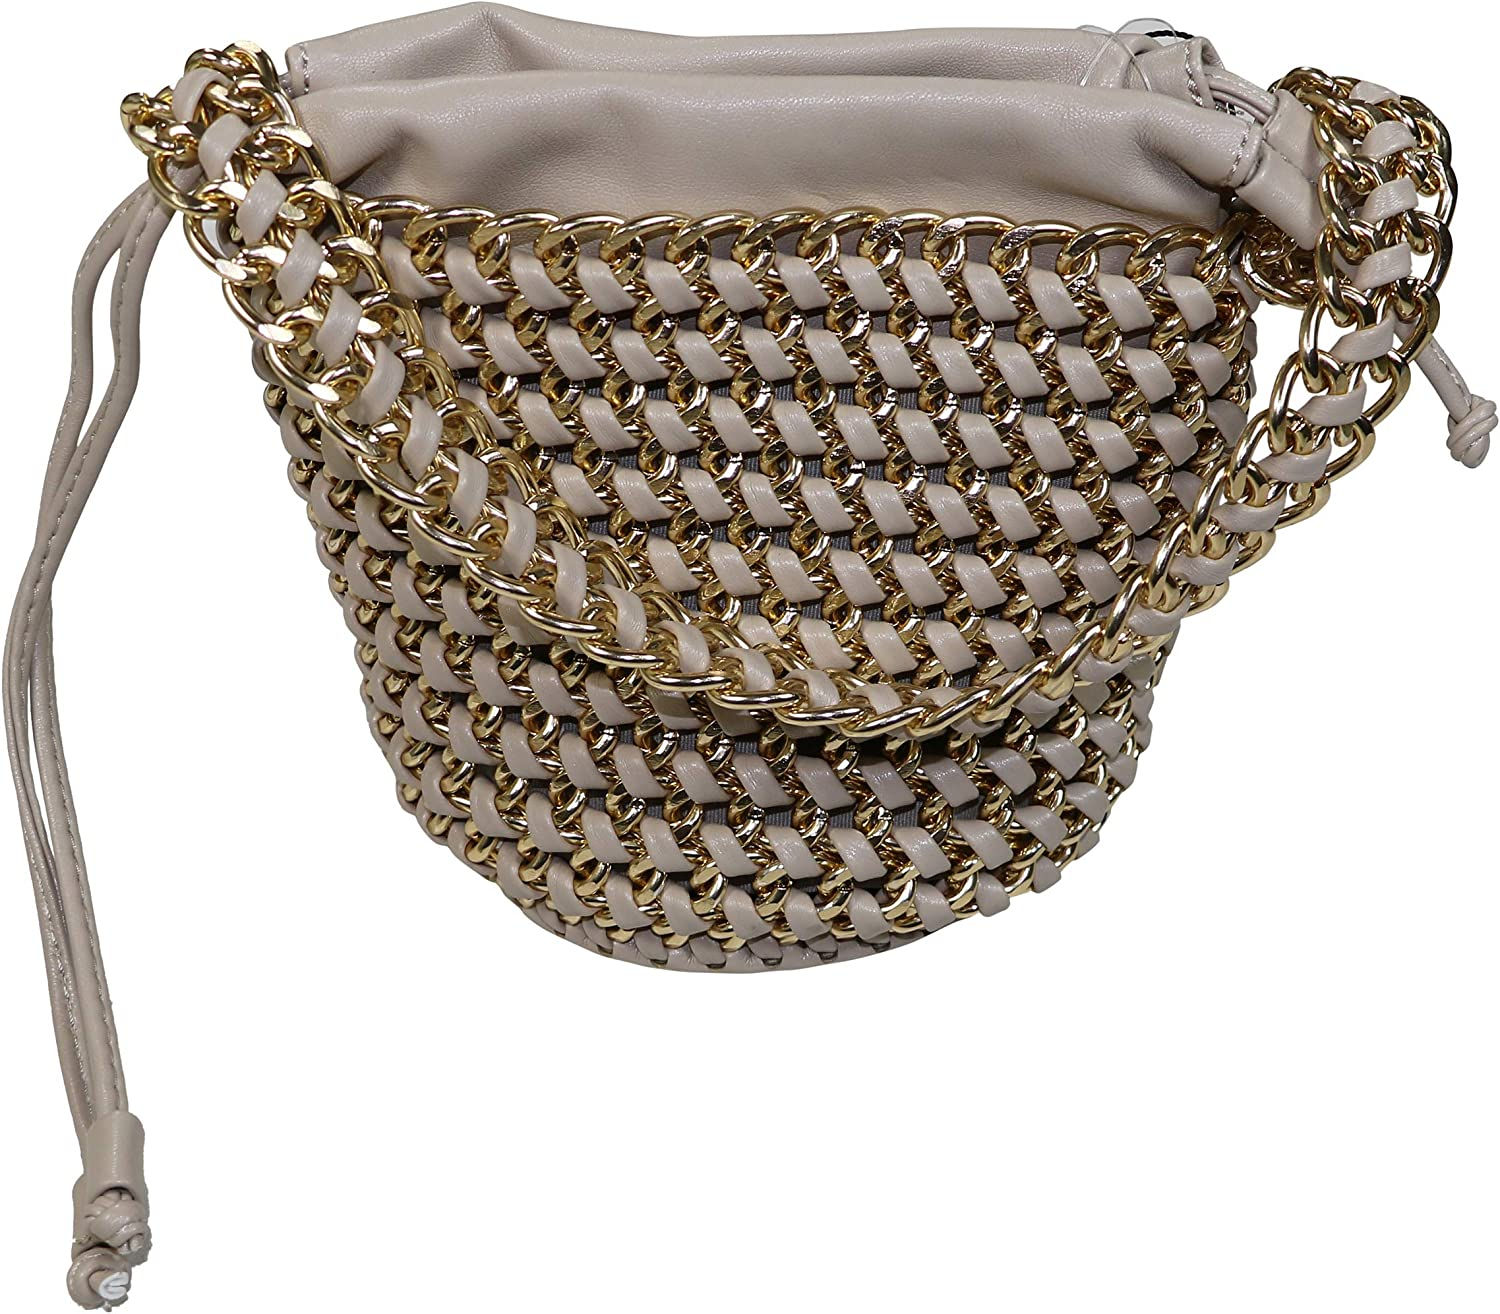 Street Level Chain & Woven Faux Leather Drawstring Bucket Bag